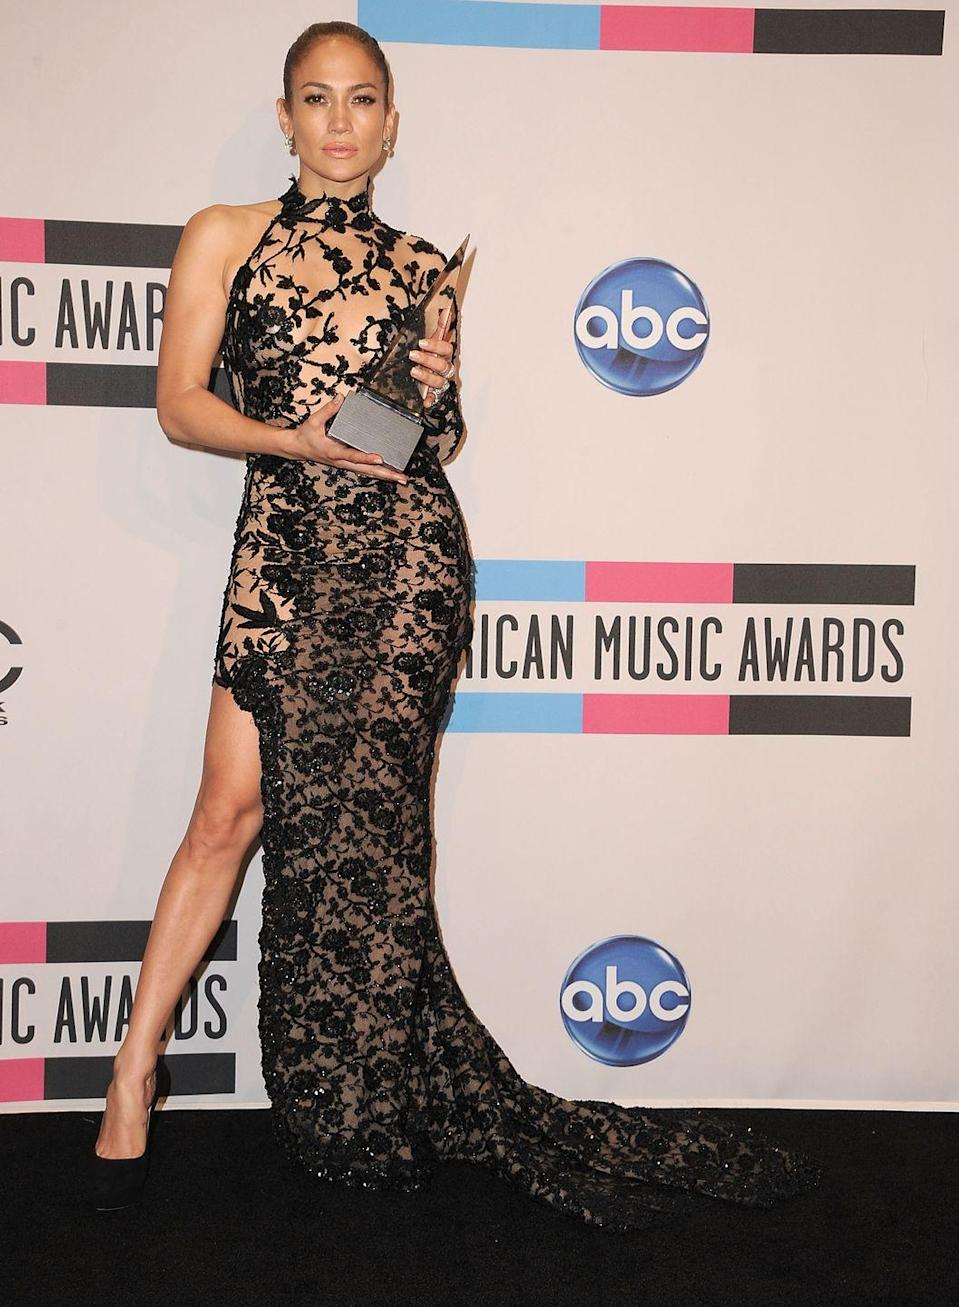 <p>J.Lo accepts her win for Favorite Latin Artist at the VMAs in this stunning one-shoulder sequined dress with a halter neckline and asymmetrical hem. I stan a dramatic leg pose! </p>